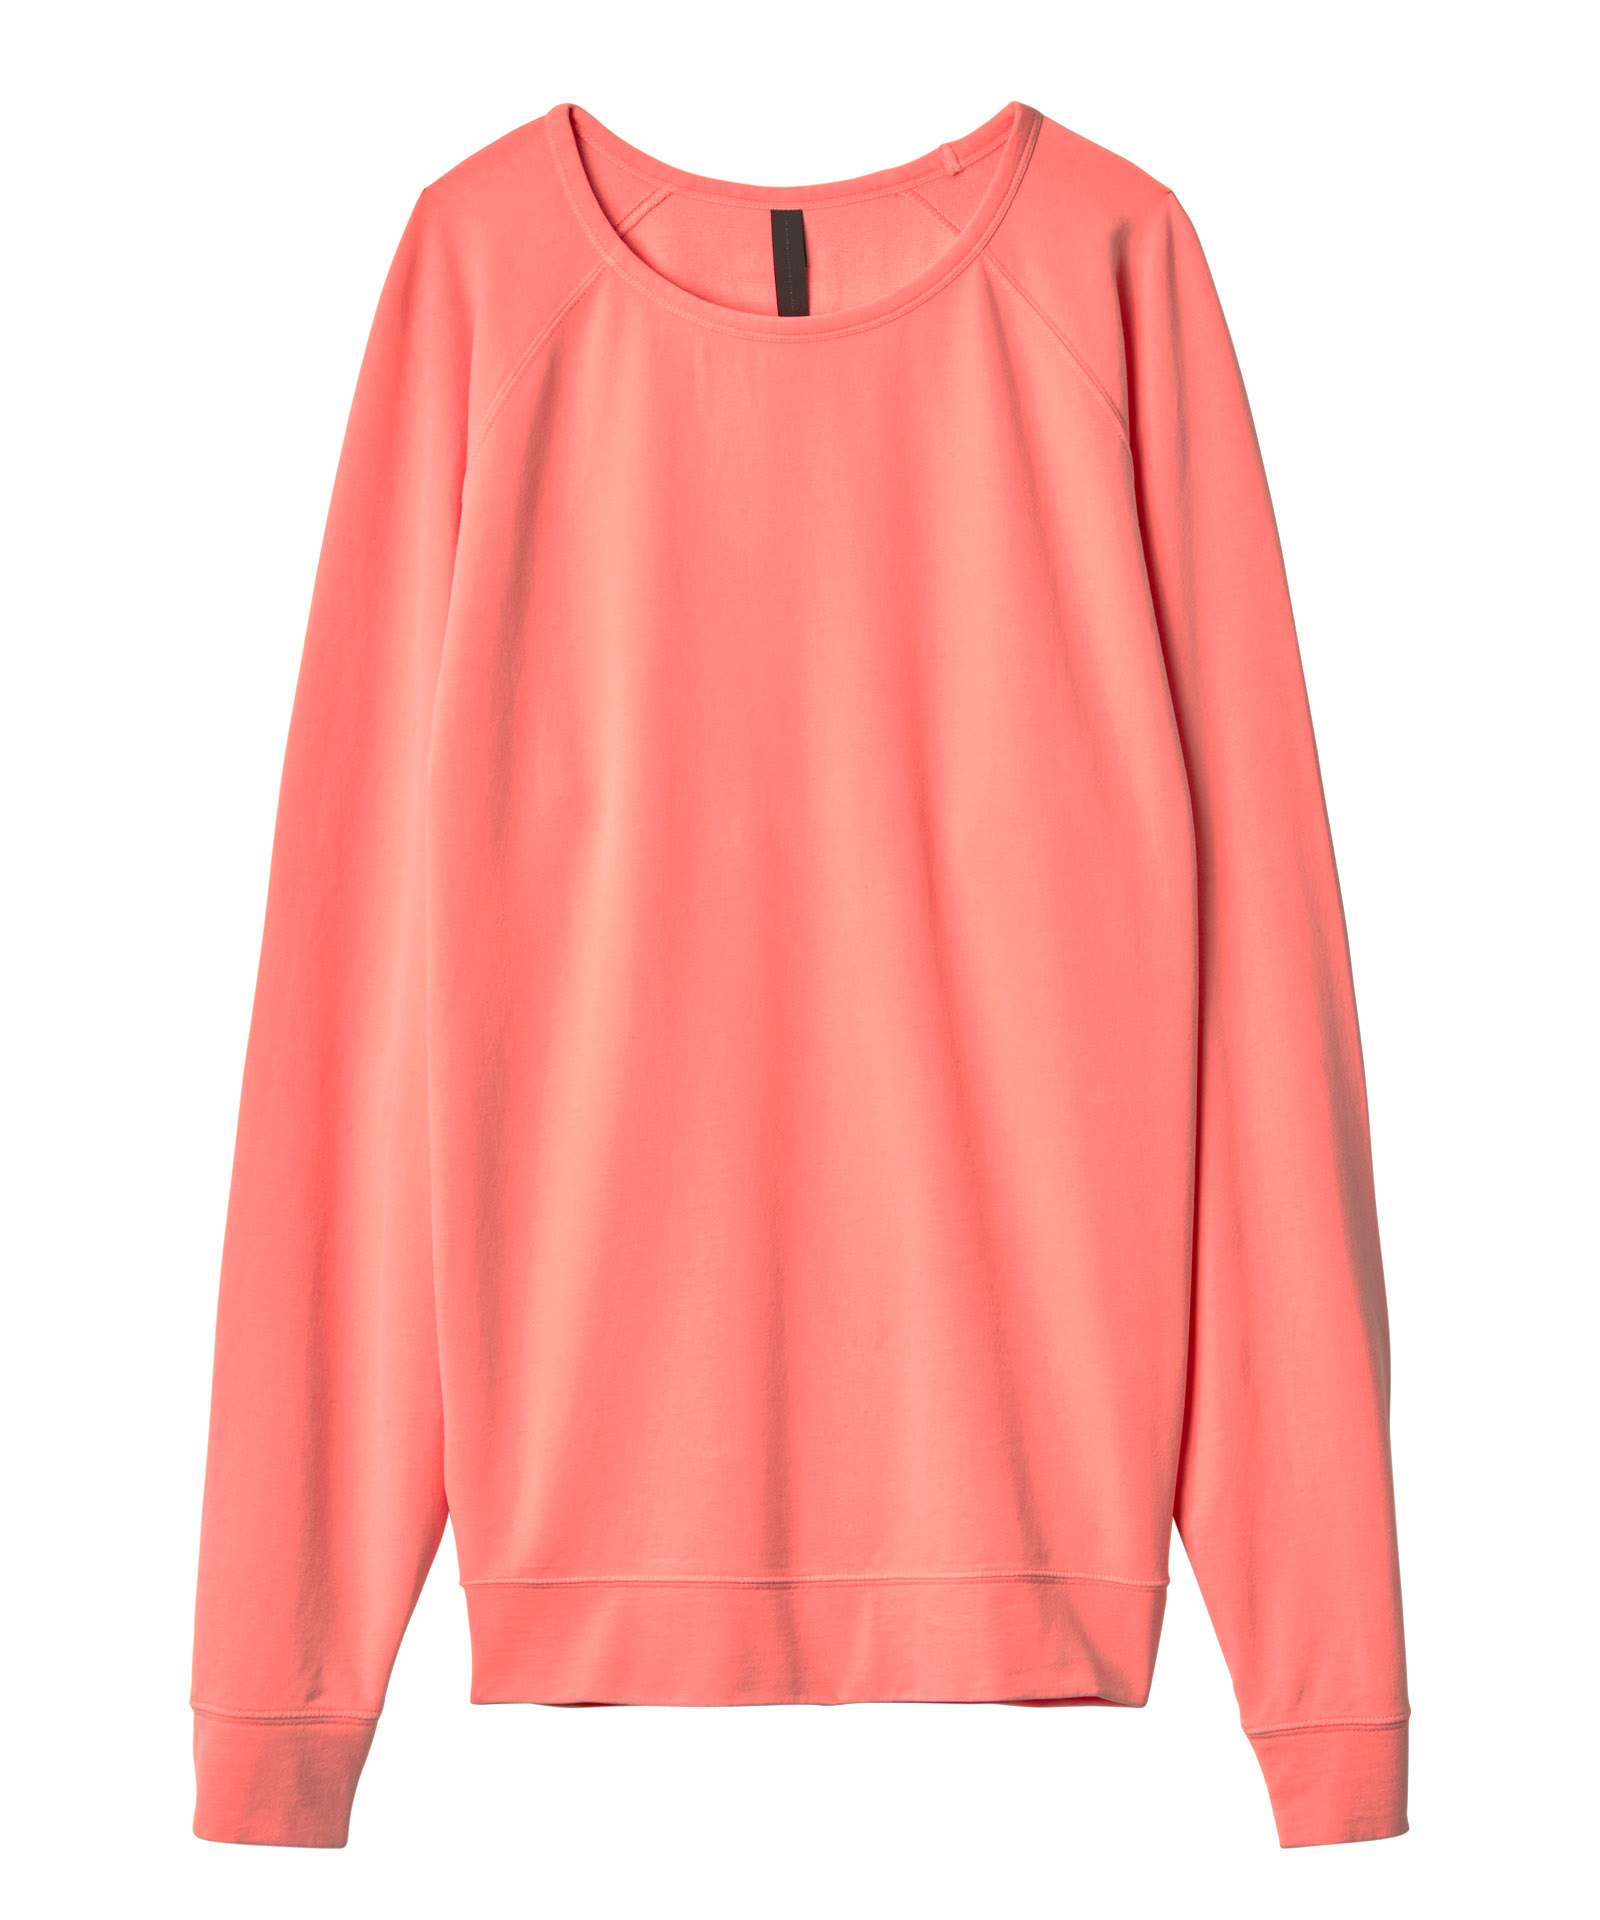 10days fluor peach the crew neck sweater